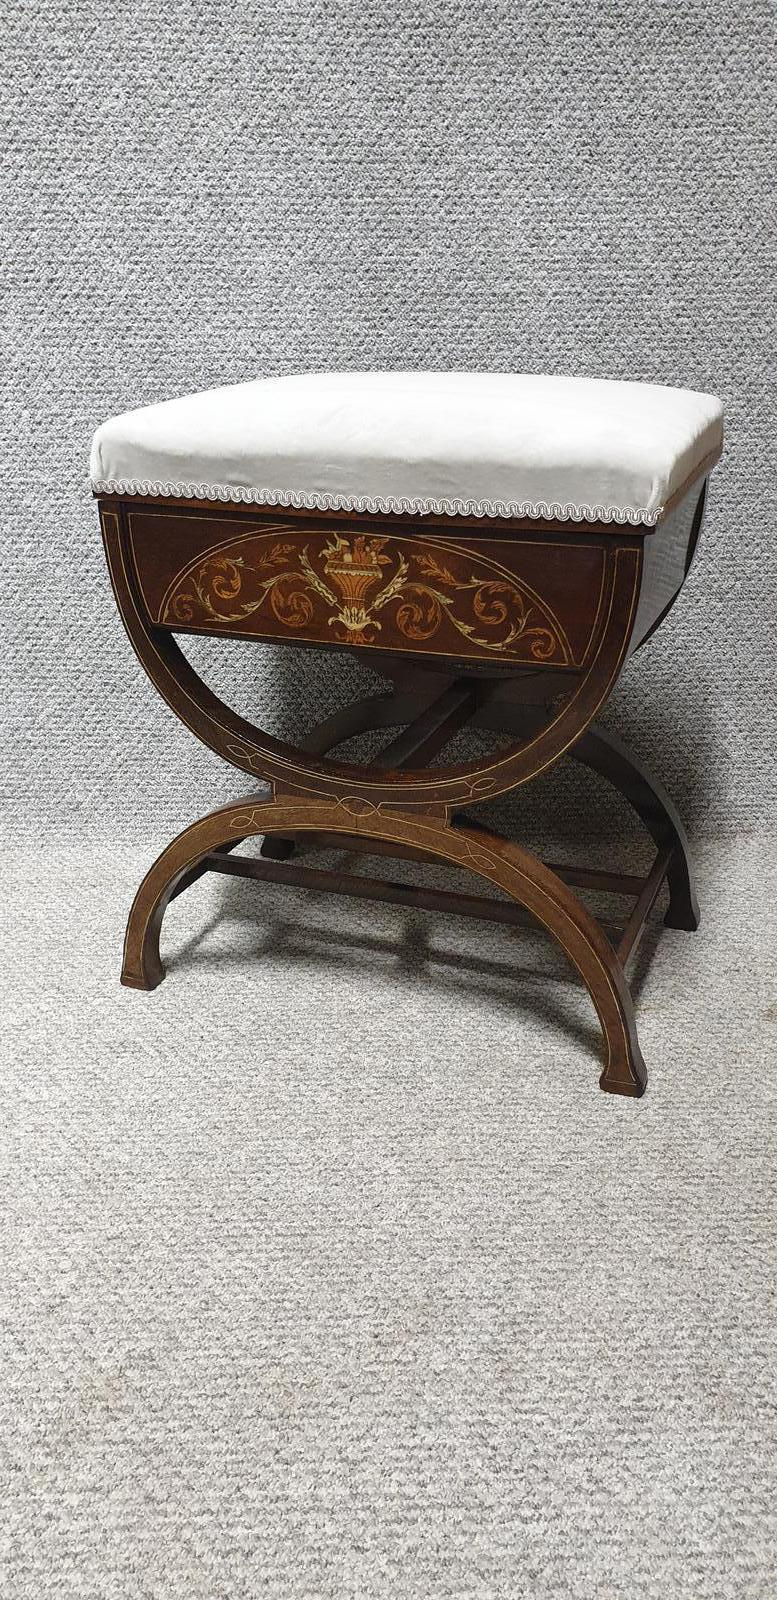 Rosewood Inlaid Piano Stool (1 of 1)